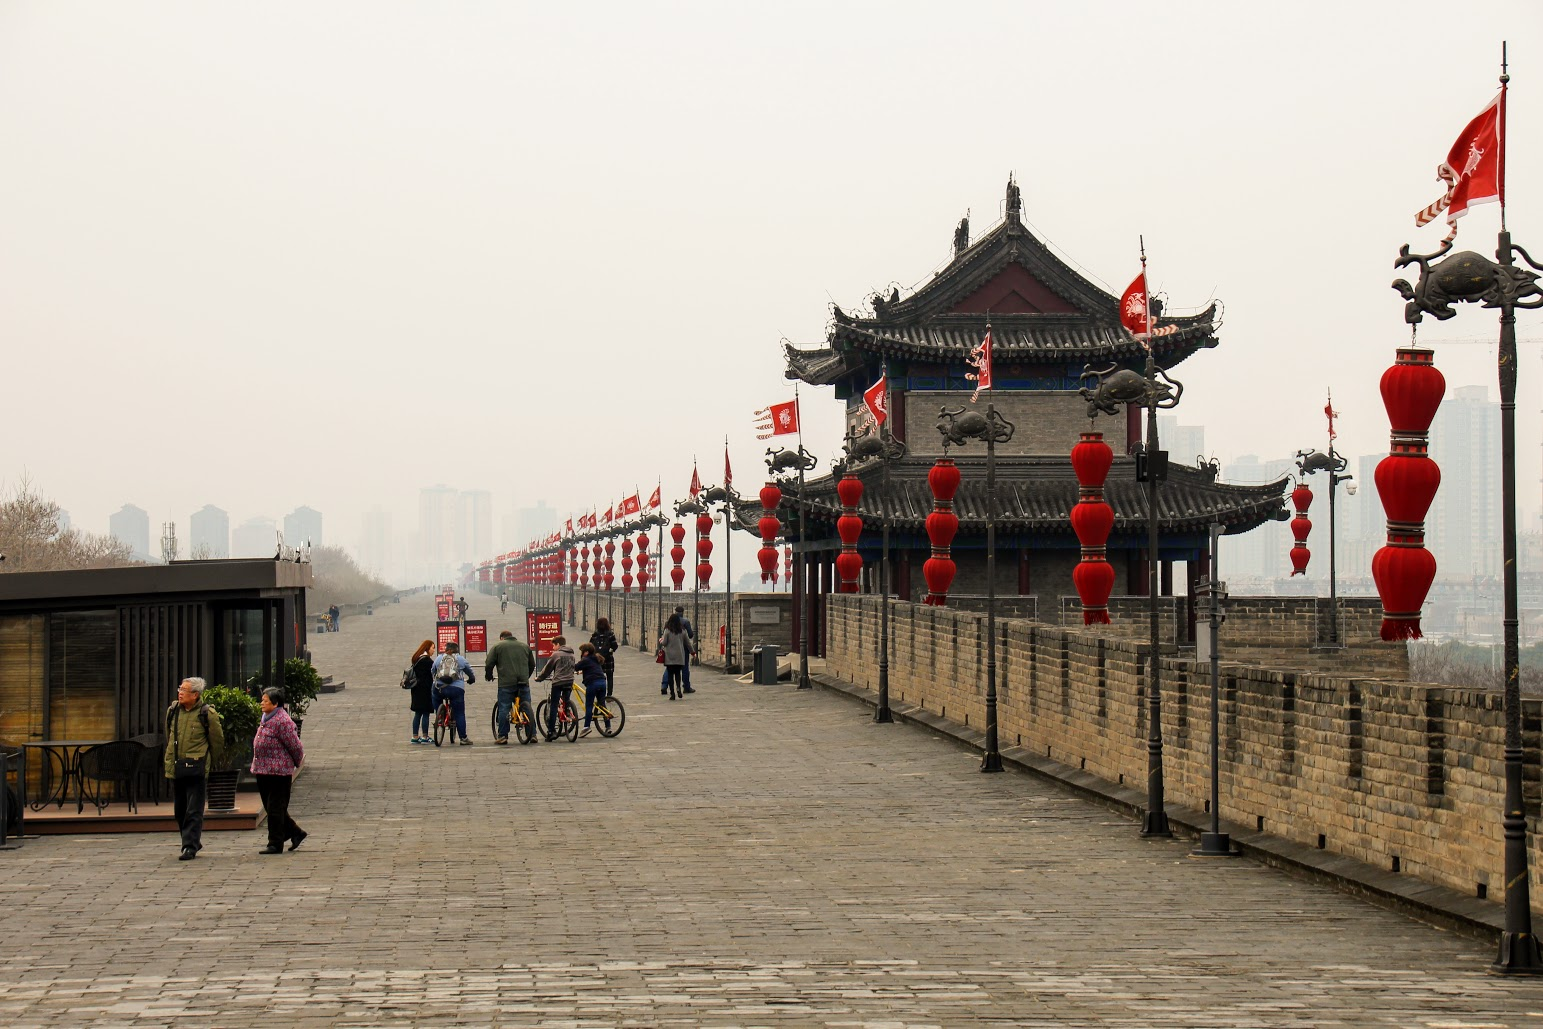 Xi'an fortified defensive wall